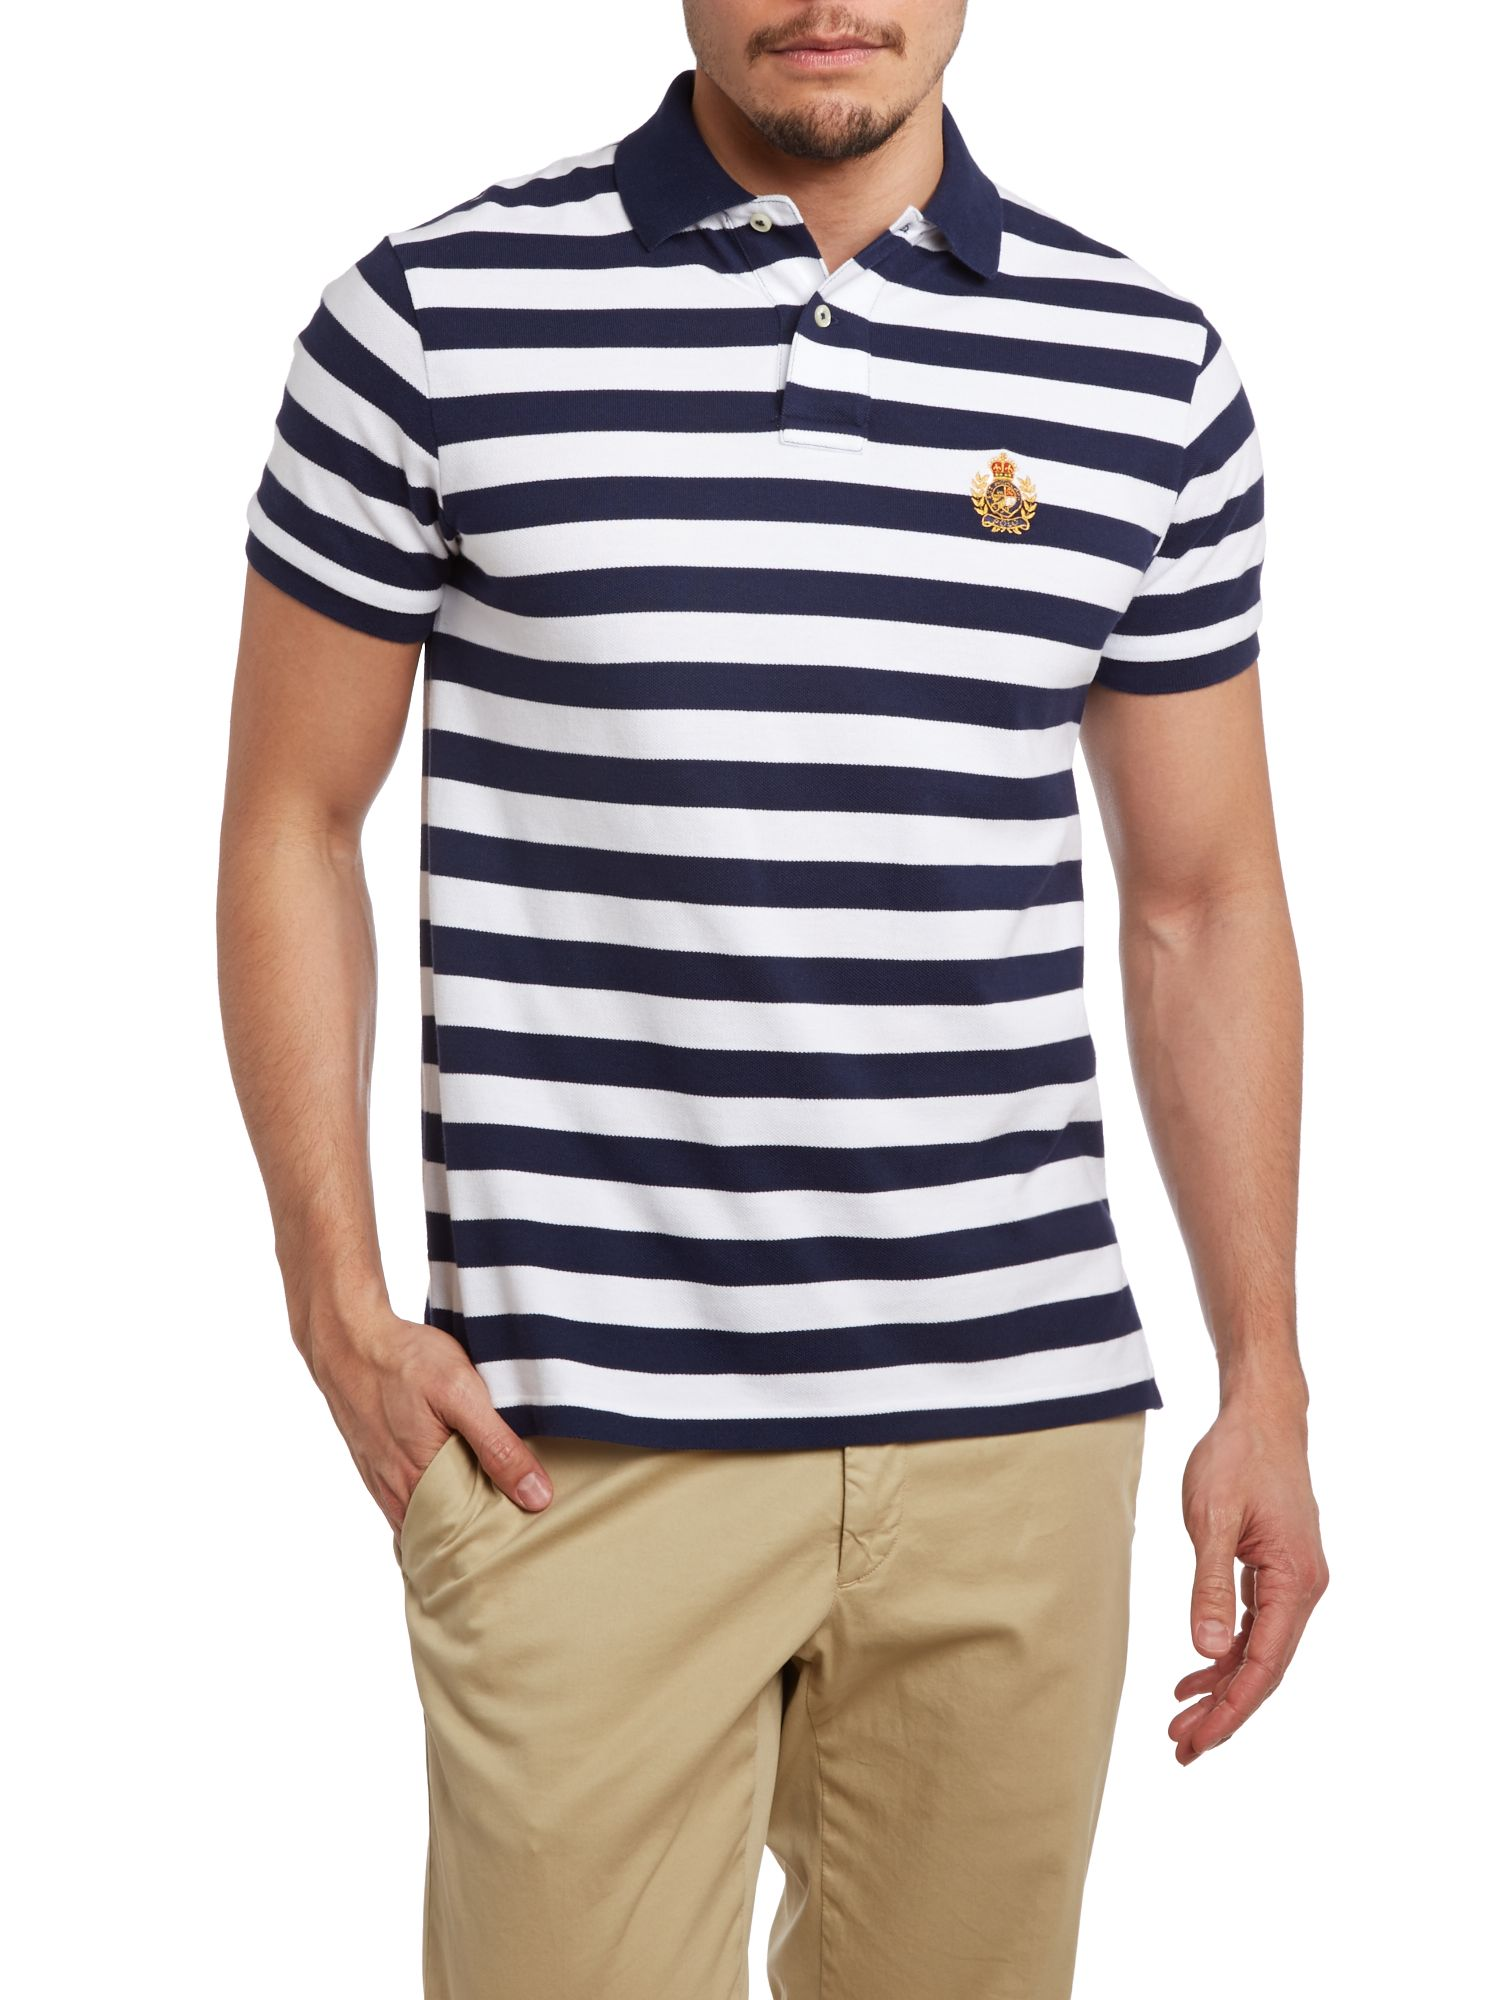 Striped custom fit crest pocket polo shirt